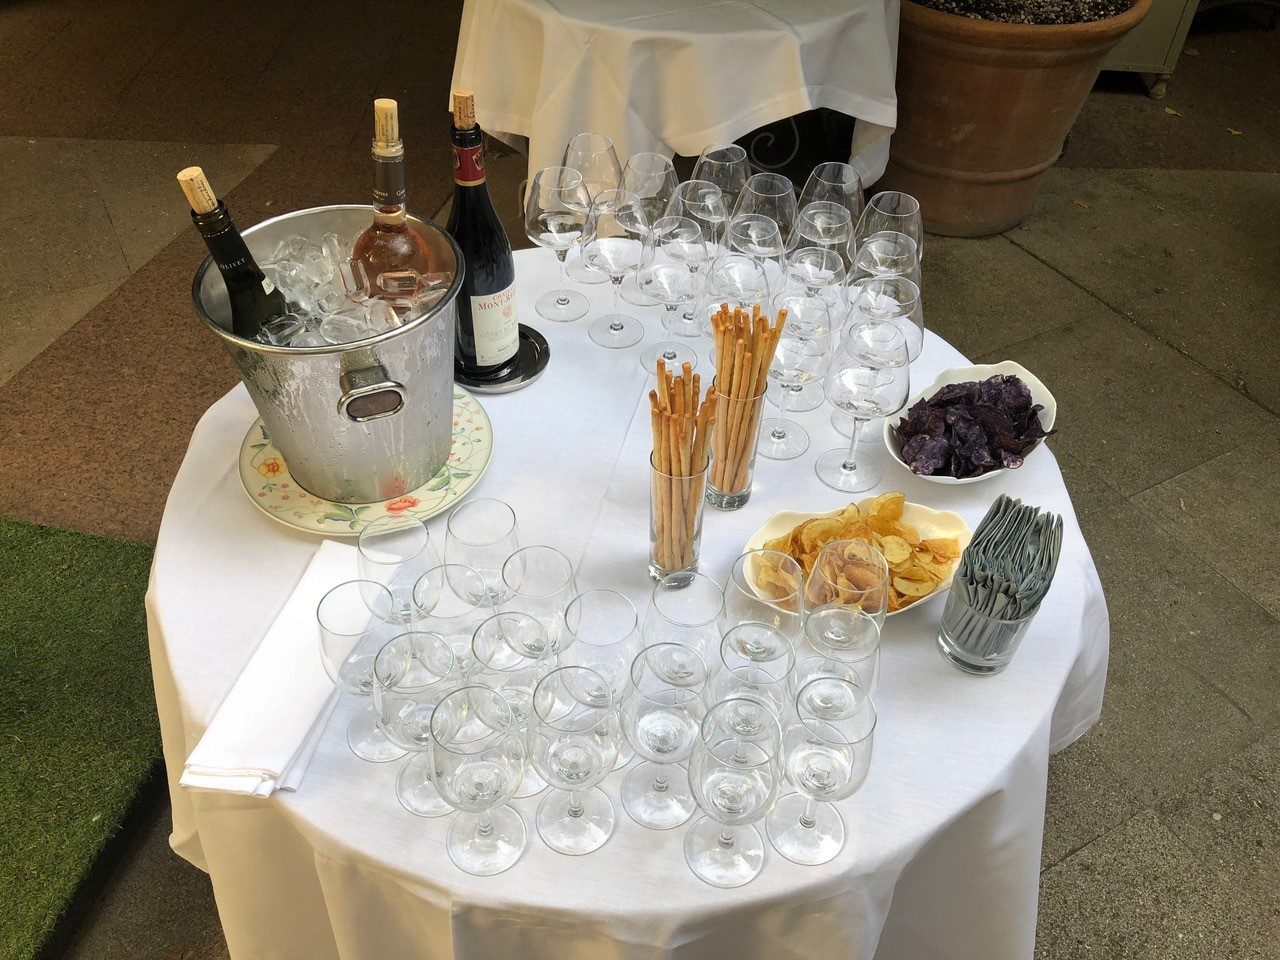 Tasting station at event